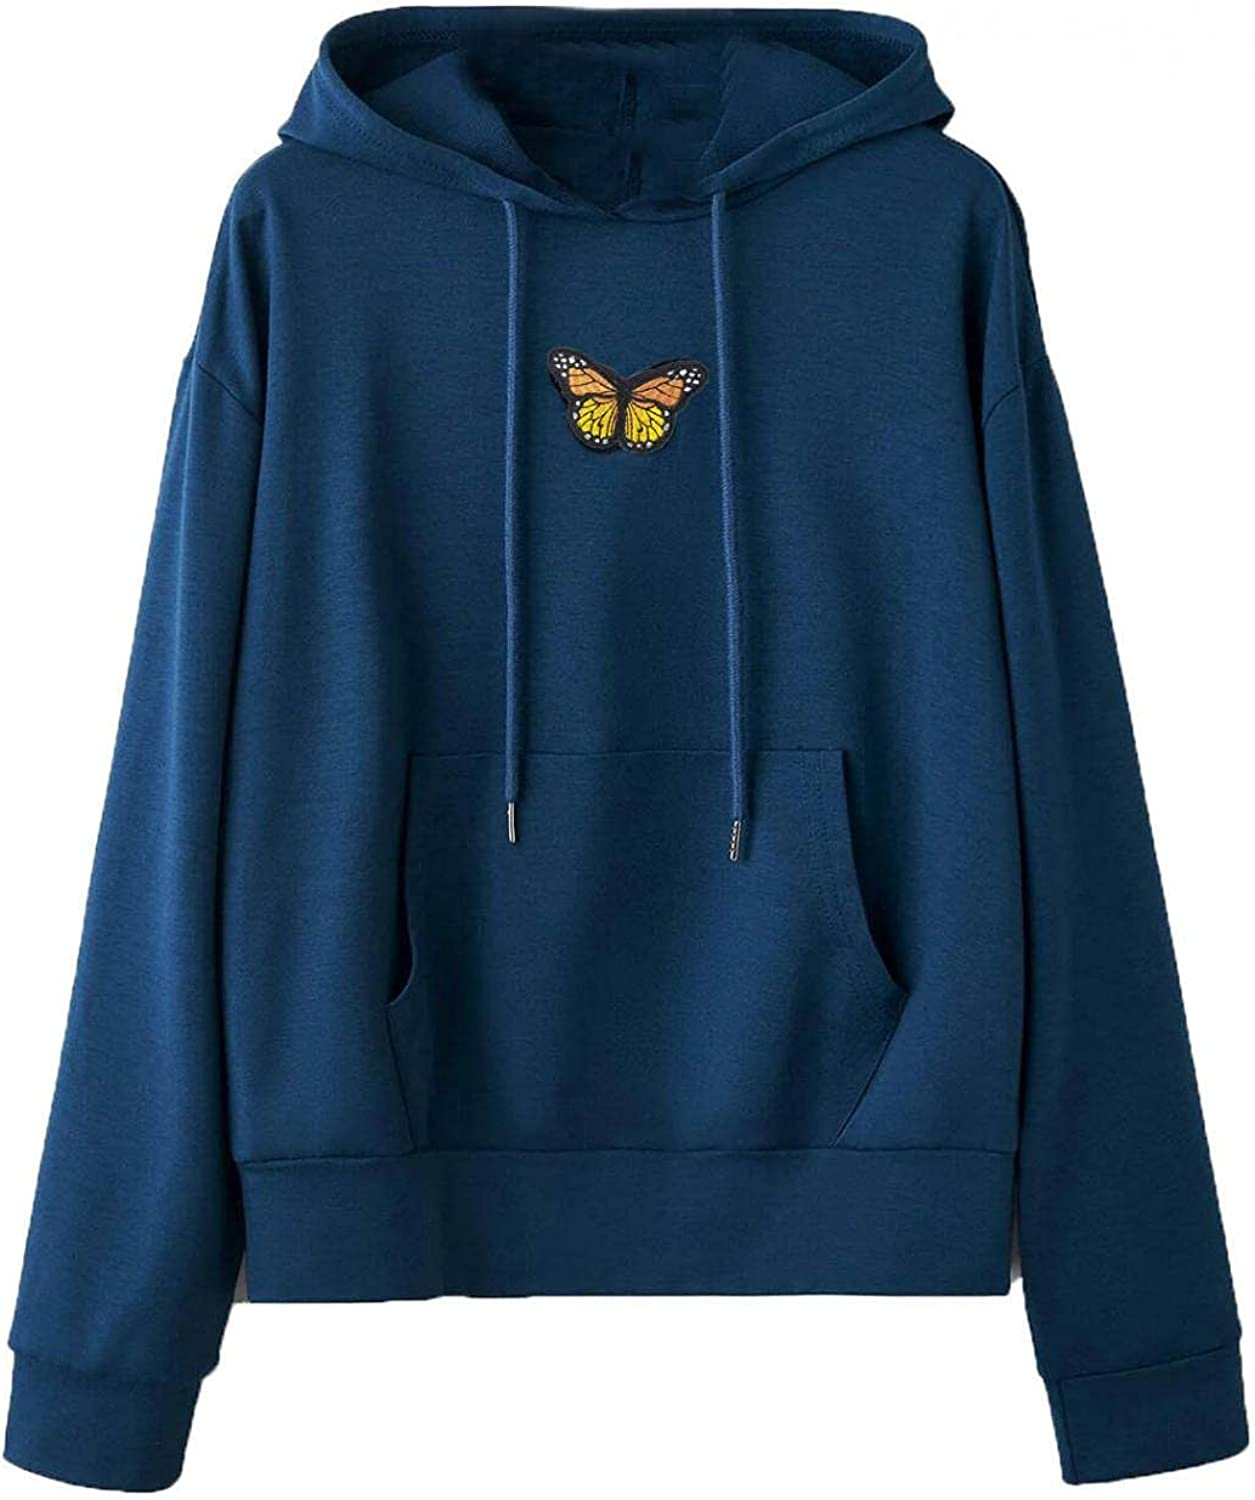 Oiumov Hoodies for Women, Womens Sweatshirts Casual Long Sleeve Butterfly Print Loose Hooded Pullover Tops with Pockets